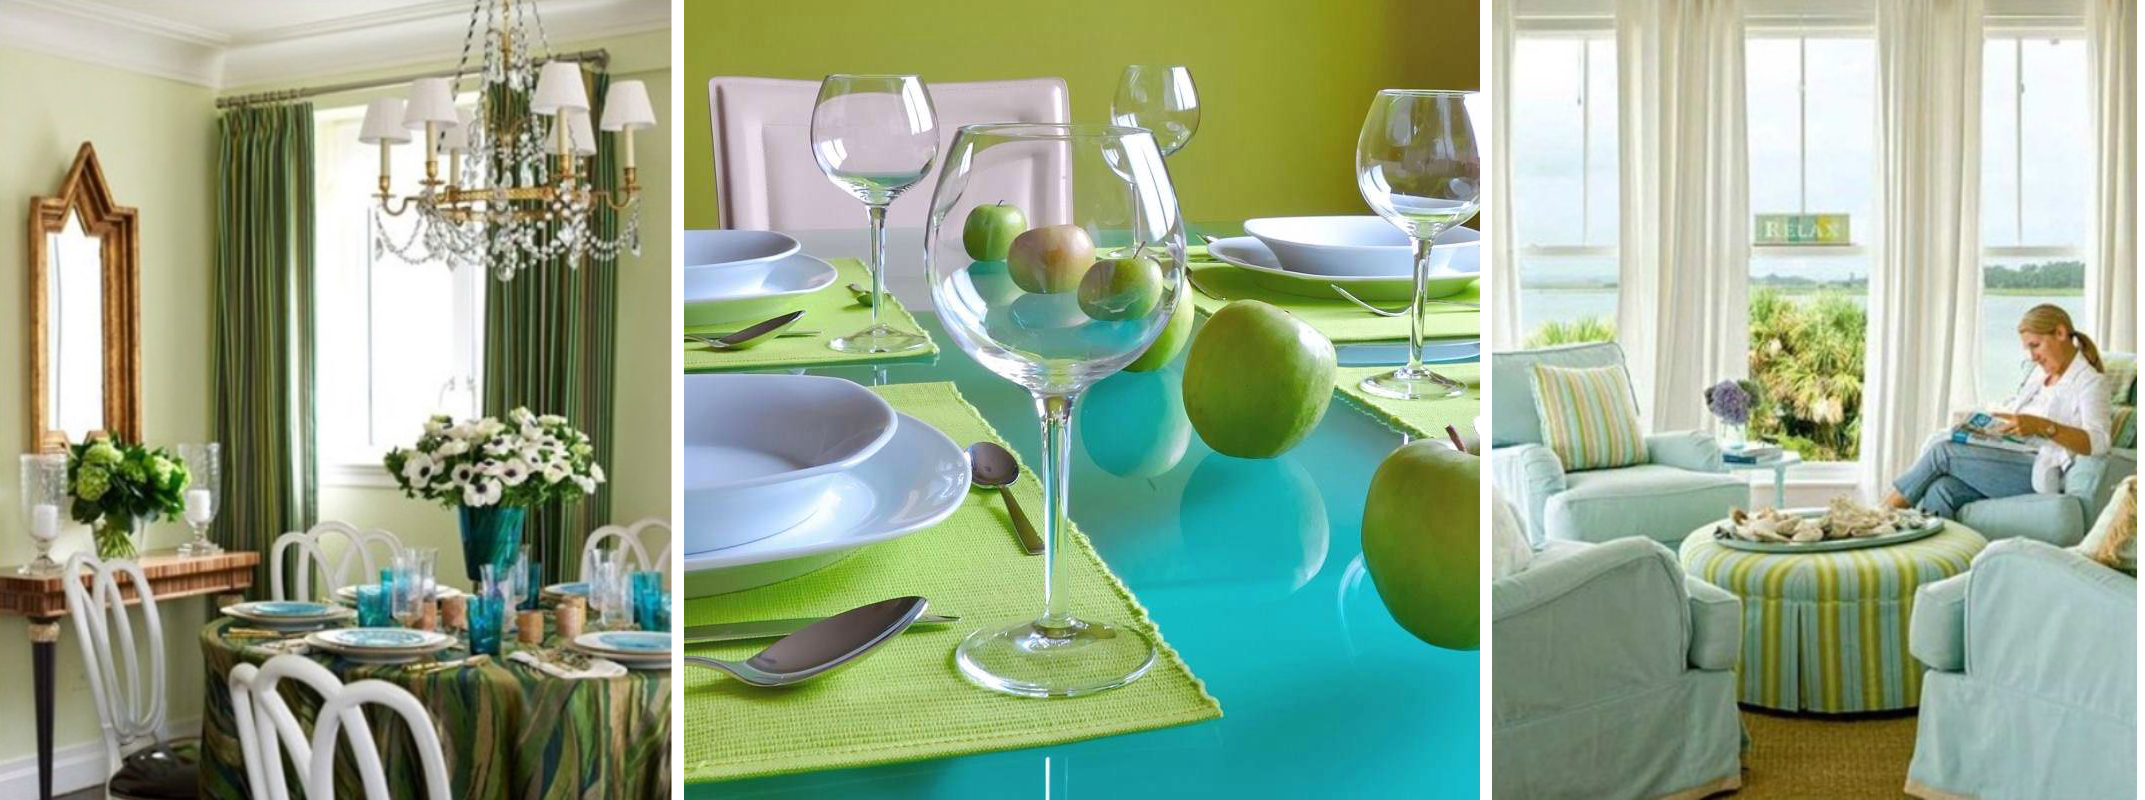 Decorate Home With Blue And Green